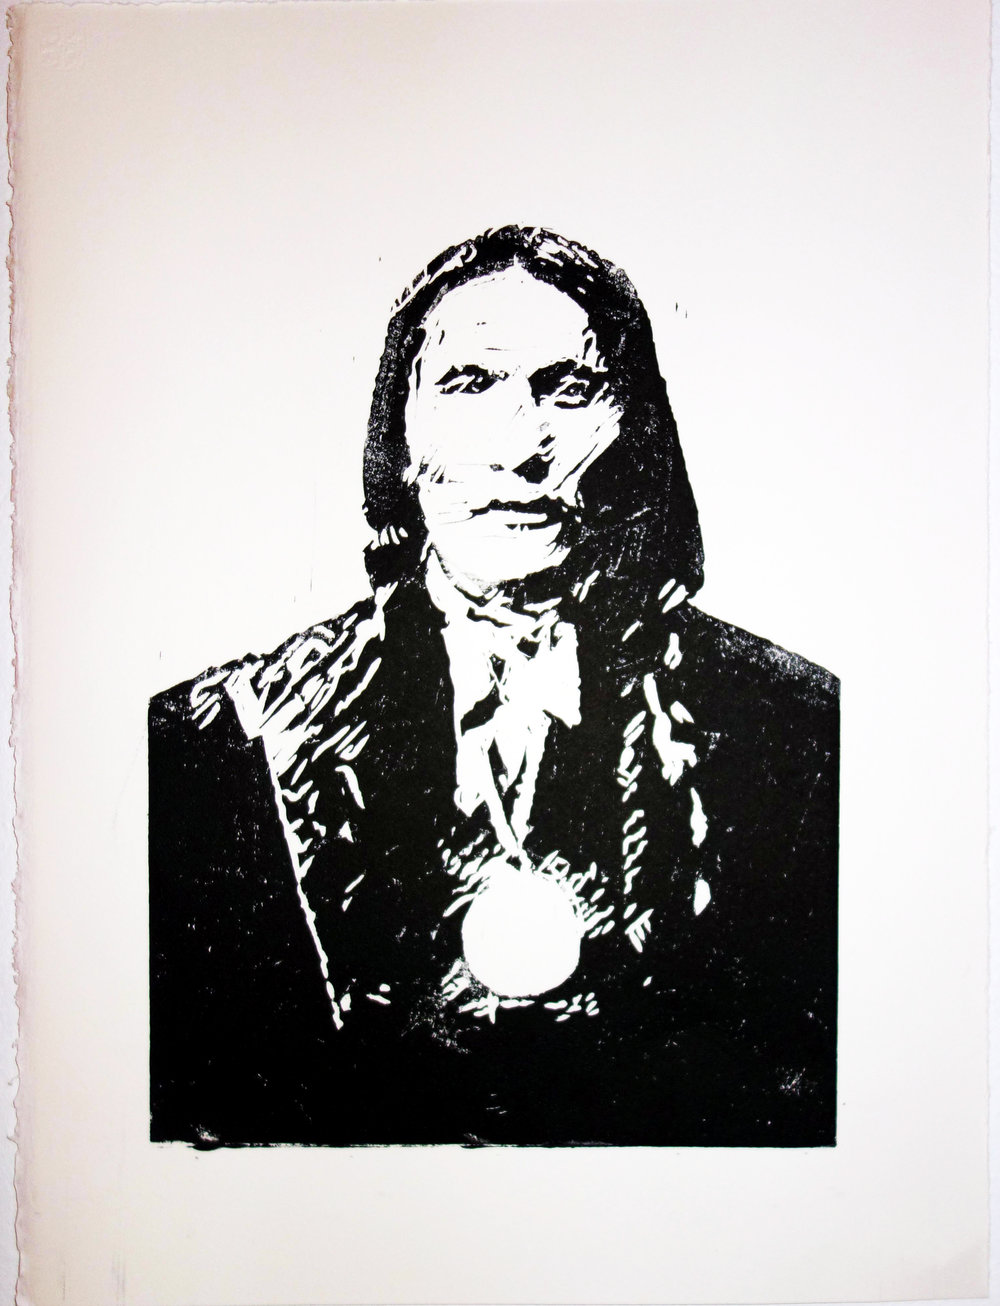 Hauglid_Martin_1_Protection_linoprint on paper_15x11 inches.JPG